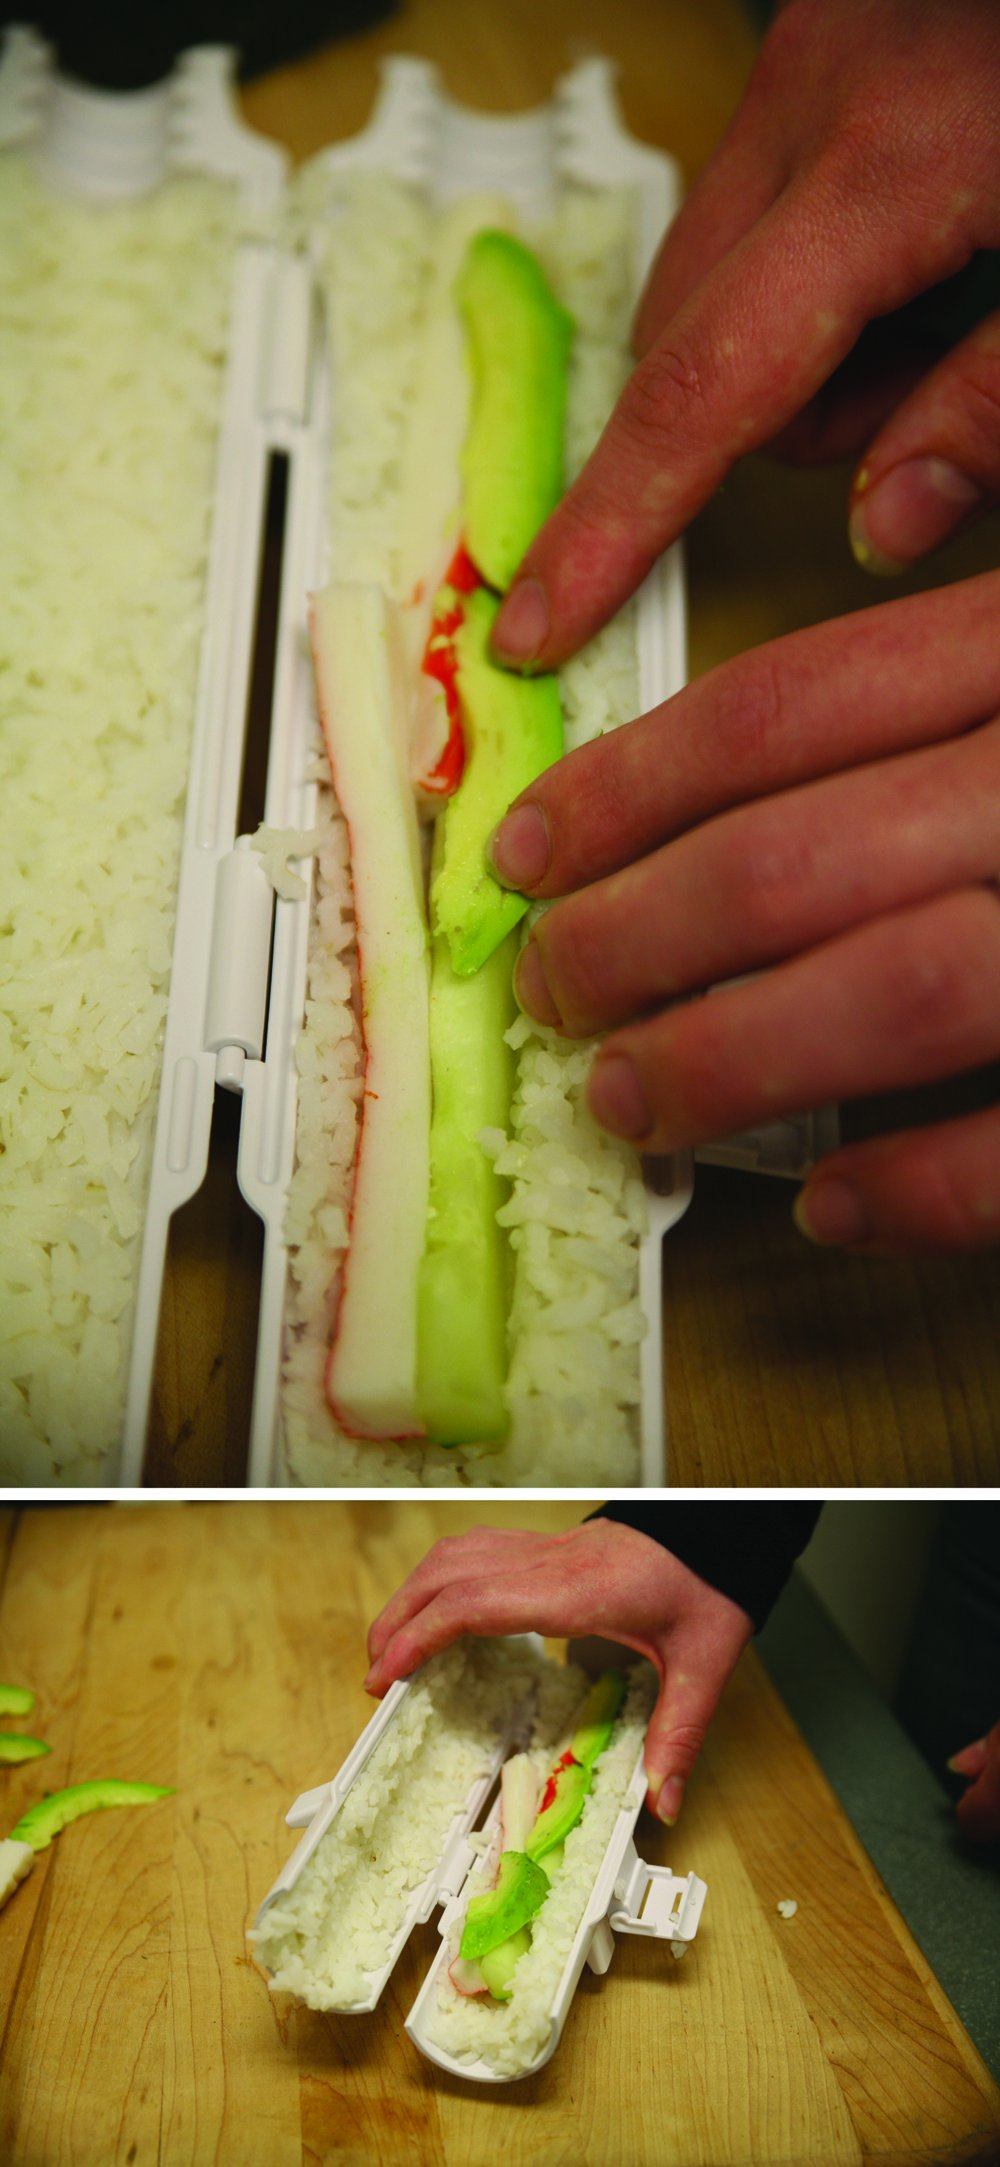 Camp Chef Sushezi Roller Kit - Sushi Rolls Made Easy by Sante (Image #3)